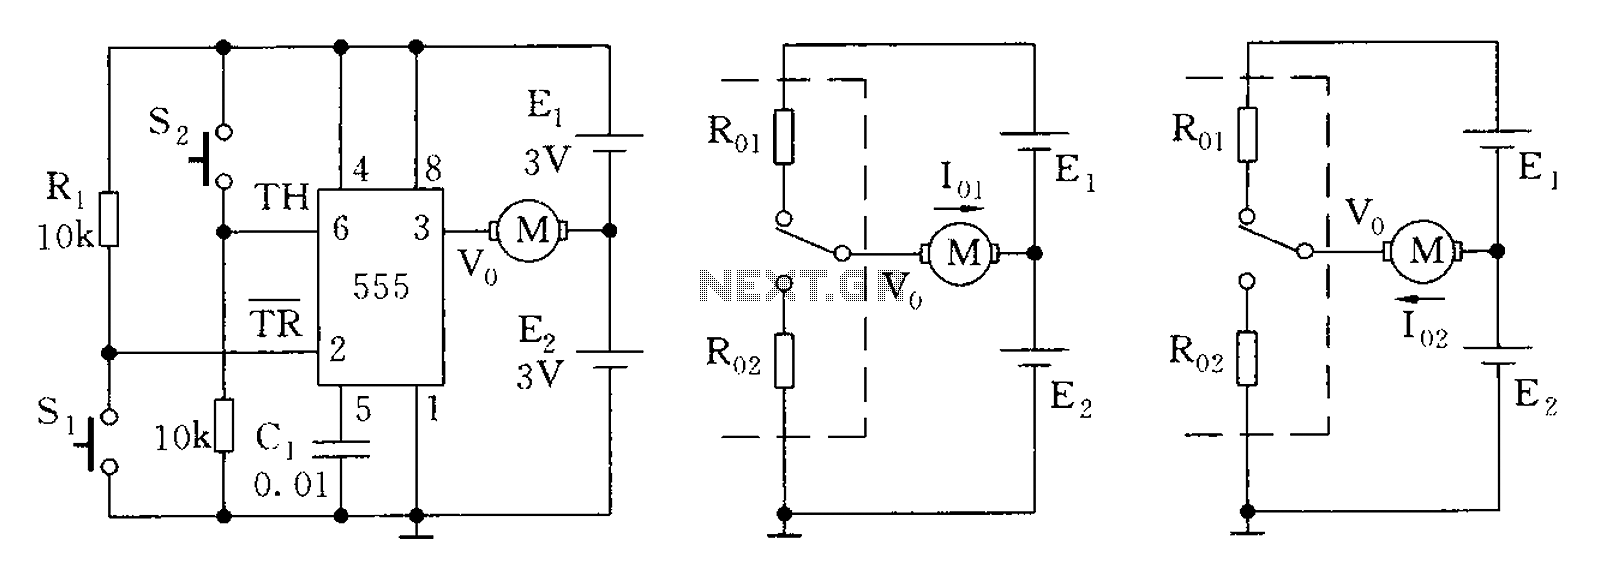 555 Timer Circuit Other Circuits Ic Internal Structure Working Pin Diagram And Description A Control Pairs Steady Mode